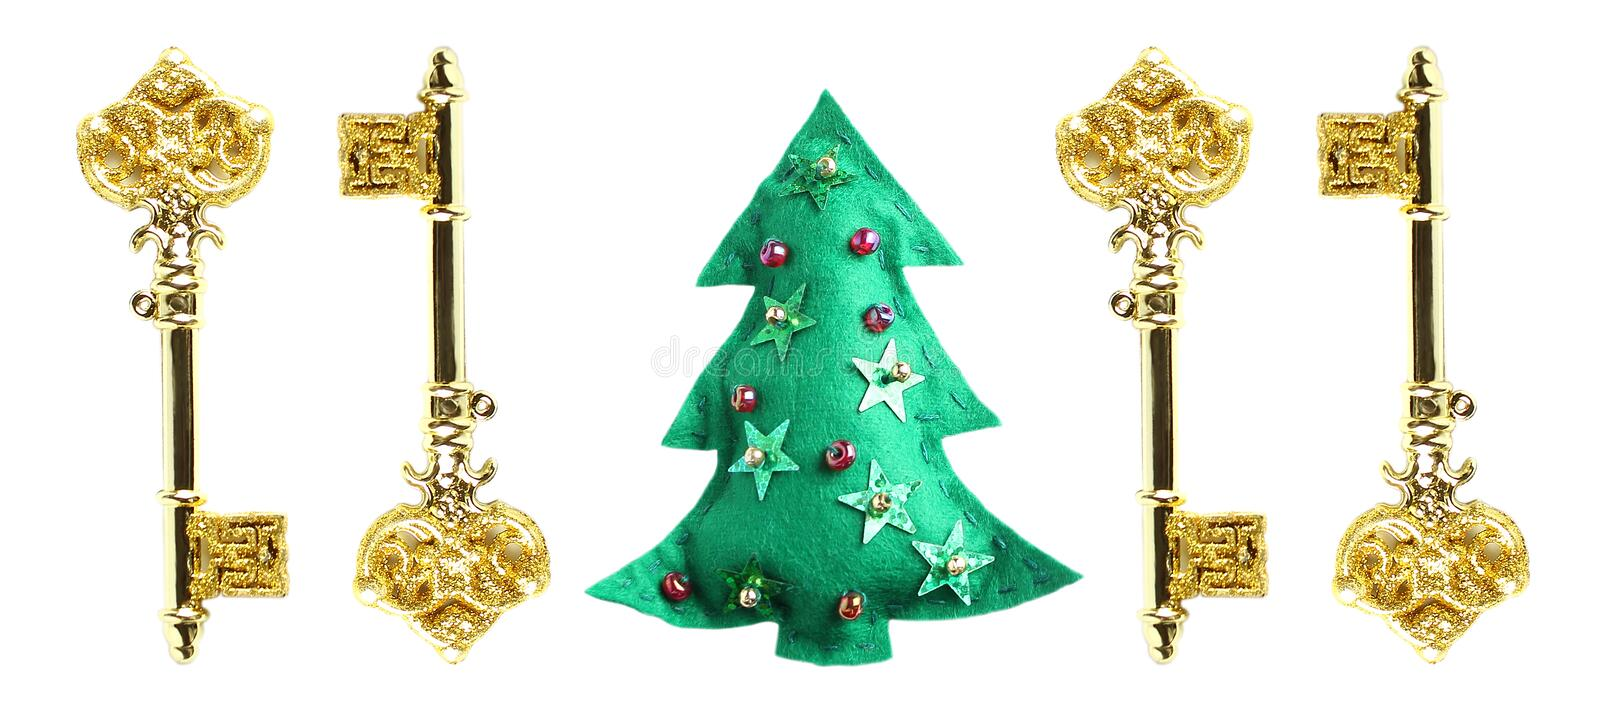 New Year greeting card concept. toys made of green felt embroidered with shiny beads and gold keys. White background, flat lay, royalty free stock images